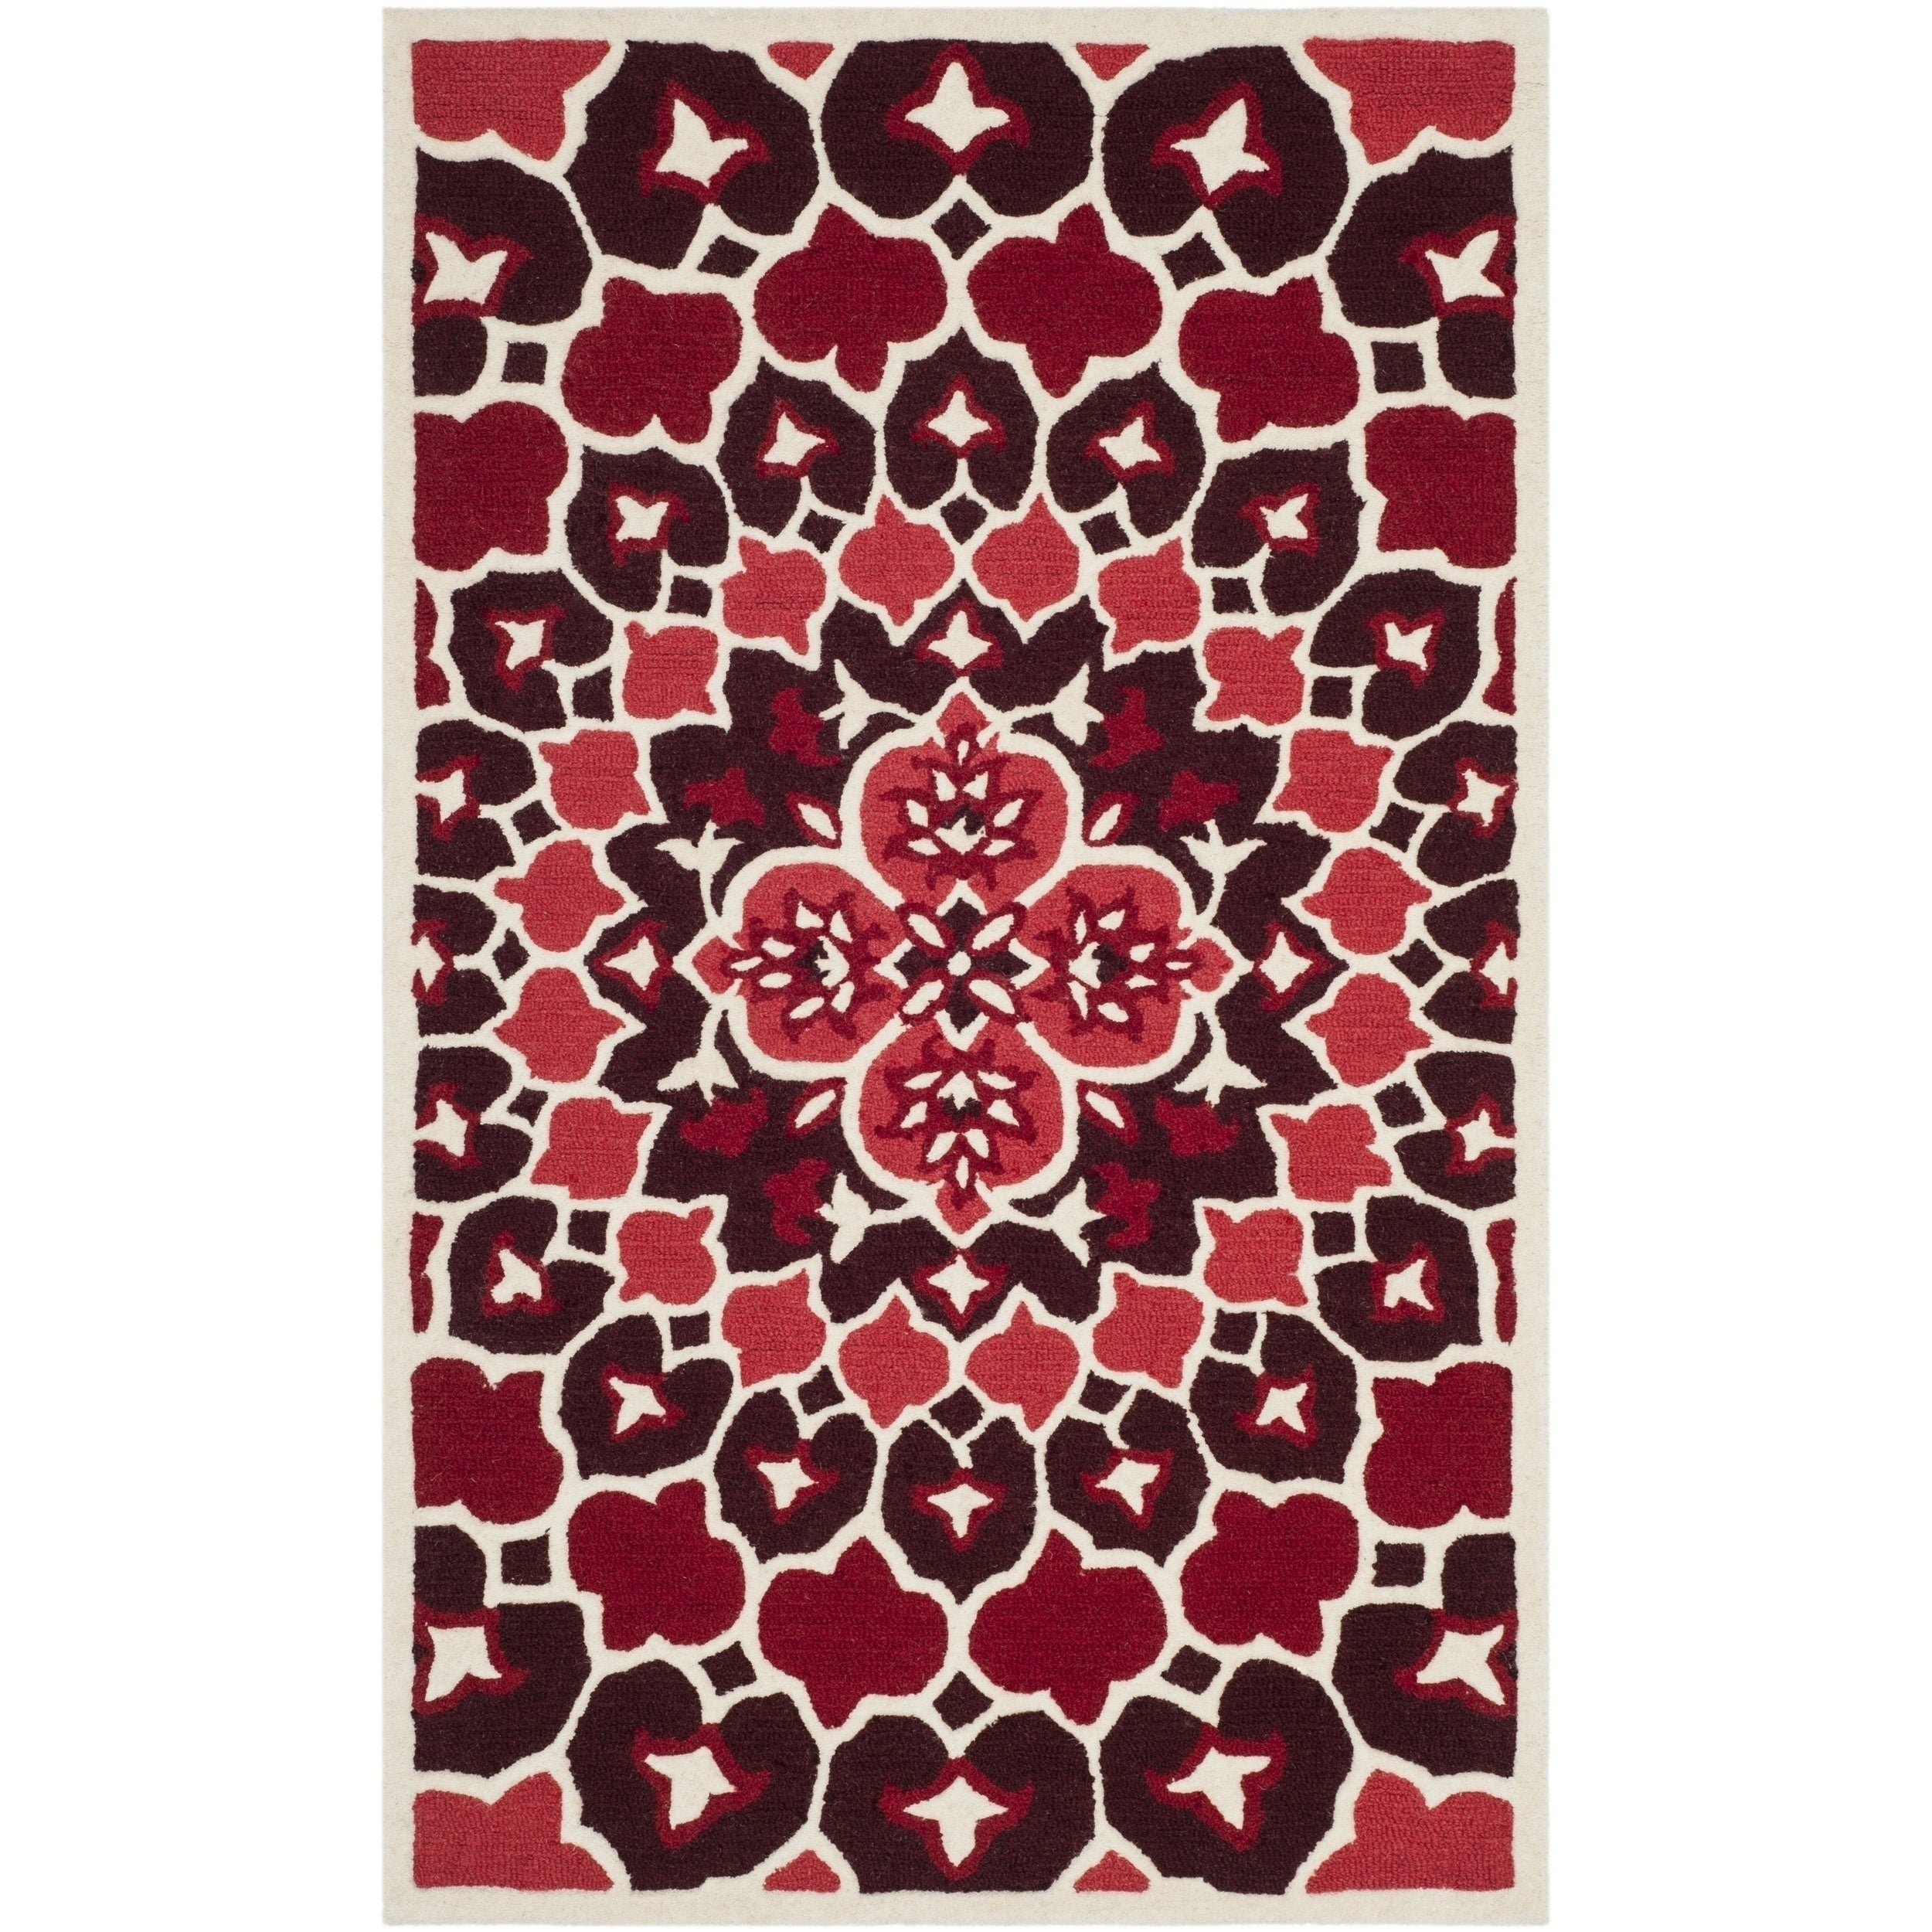 Safavieh Bellagio Contemporary Geometric Hand Tufted Wool Red Ivory Area Rug 2 X 3 Overstock 21078662